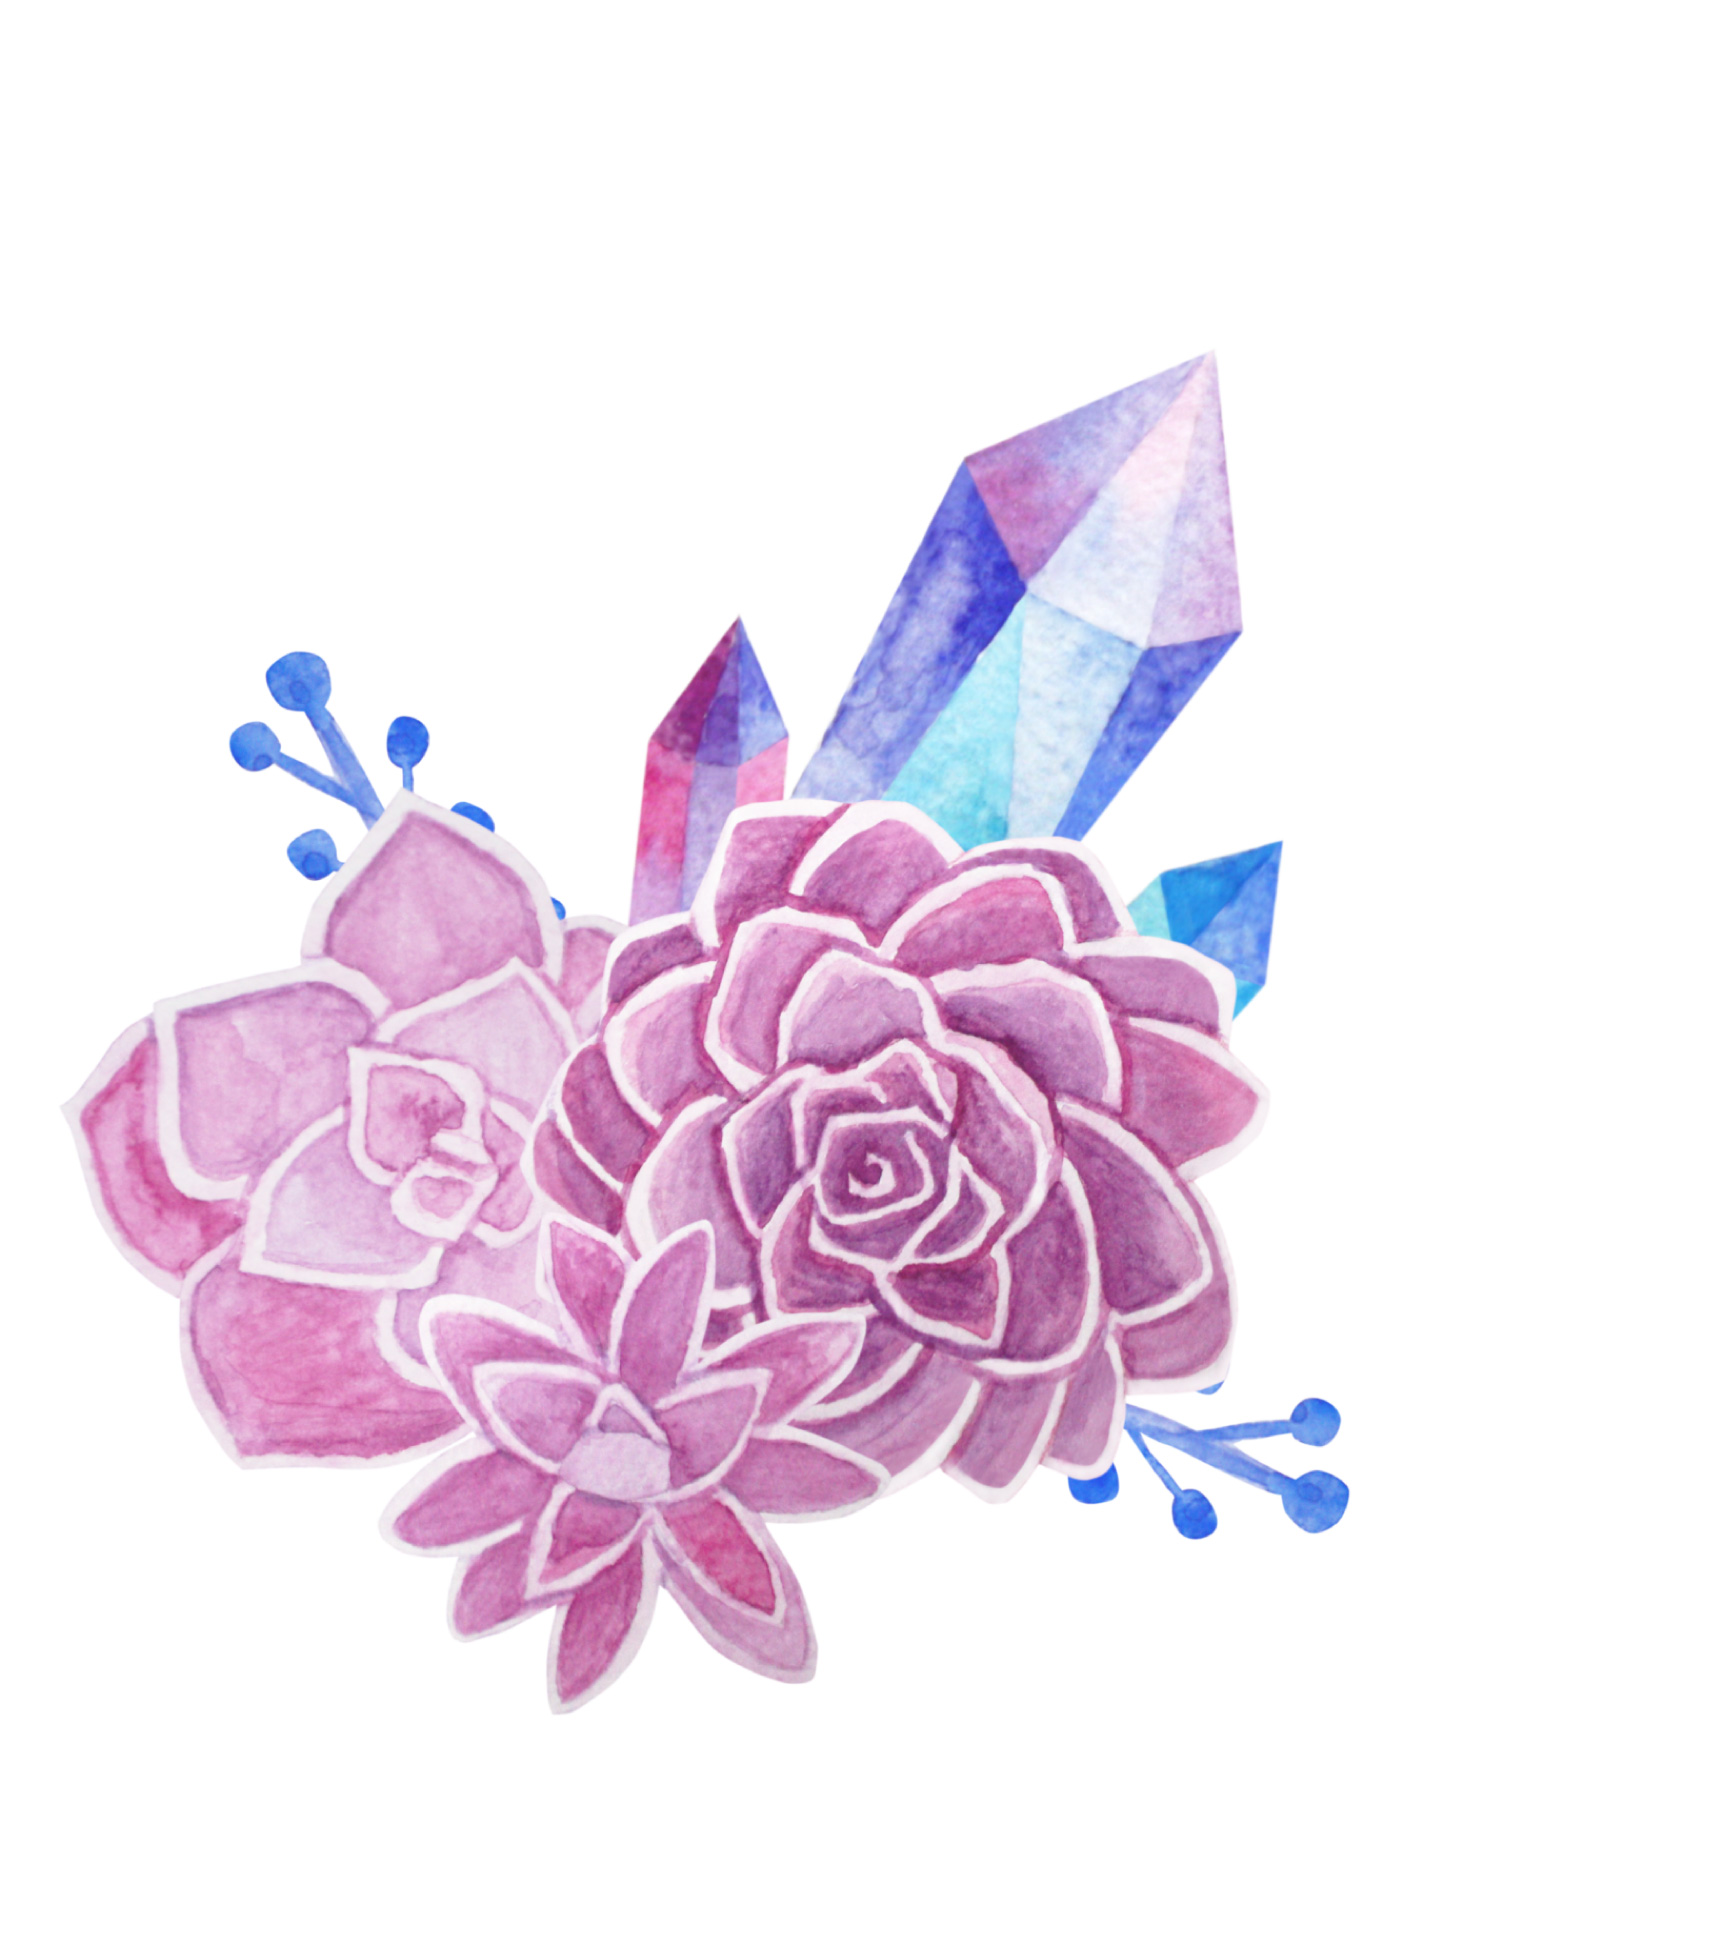 Succulents and Crystals Watercolor example image 4